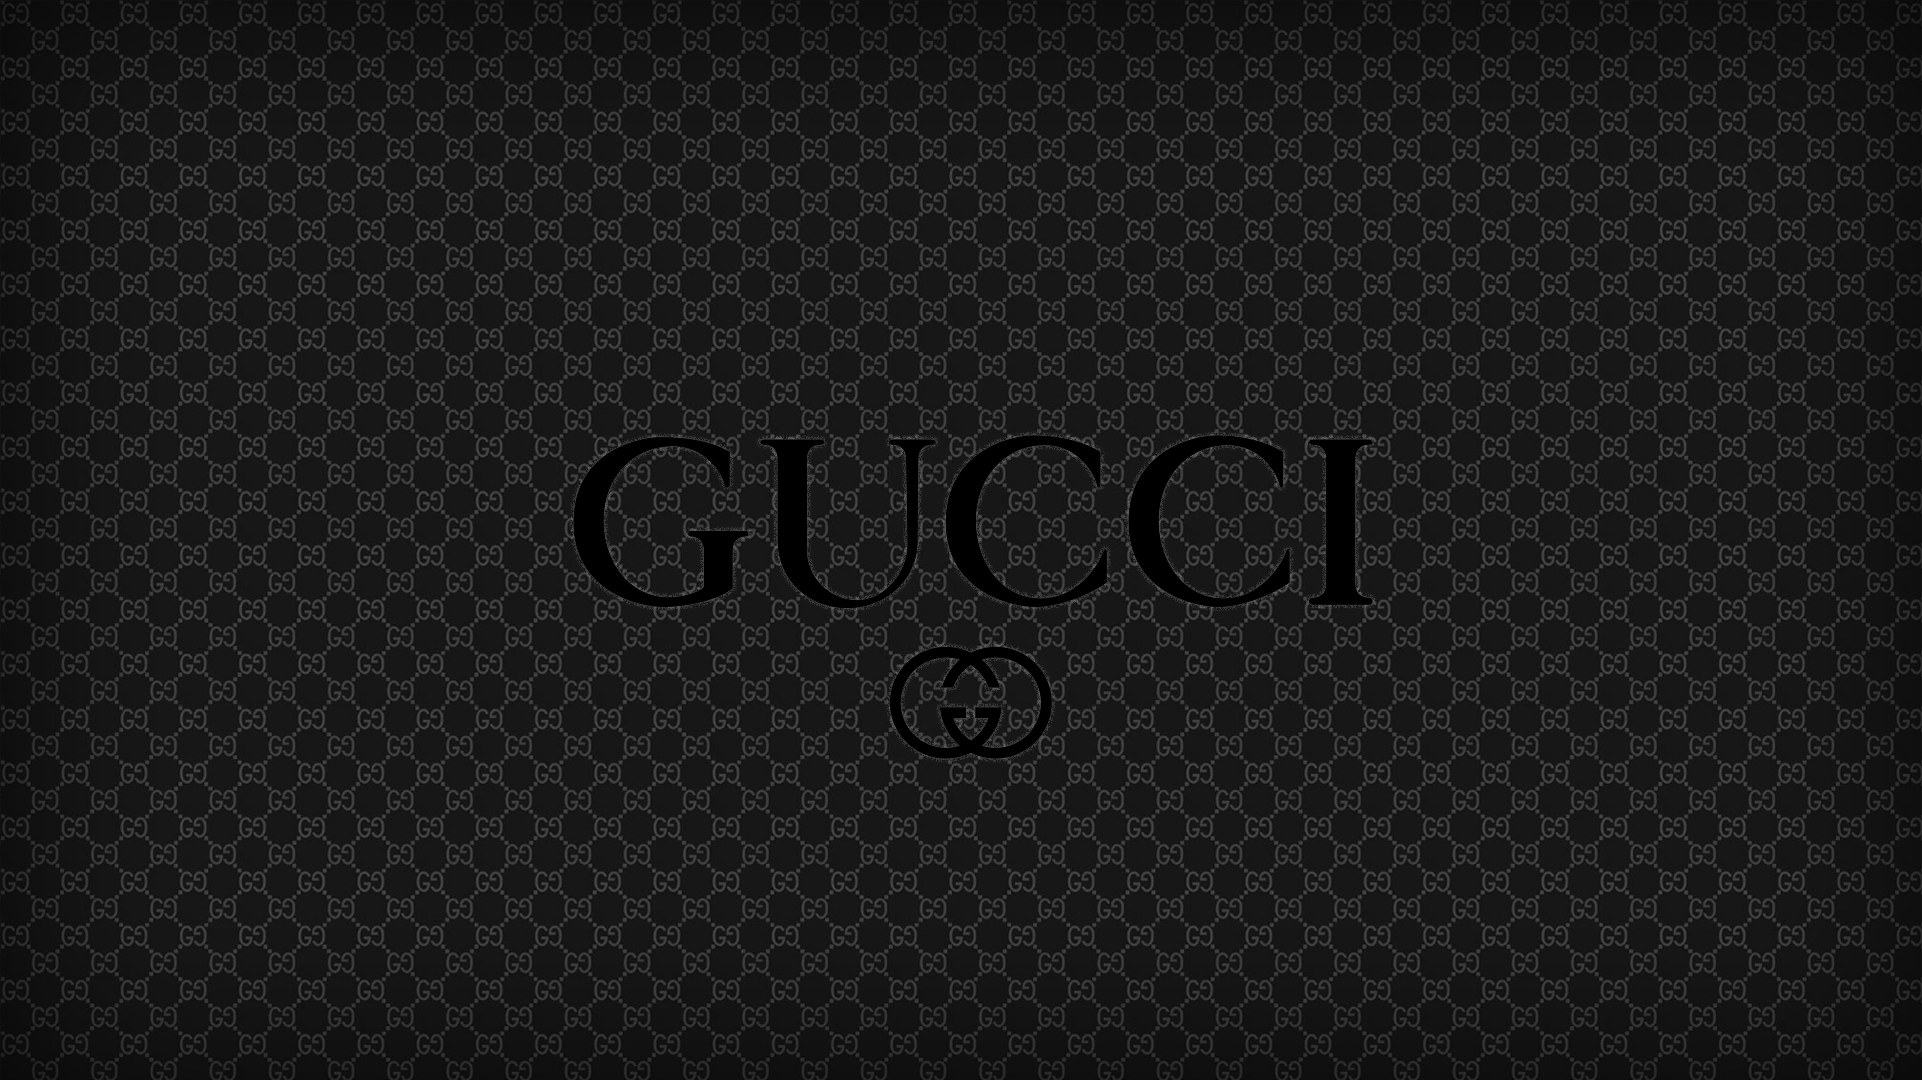 gucci wallpaper for computer - photo #15